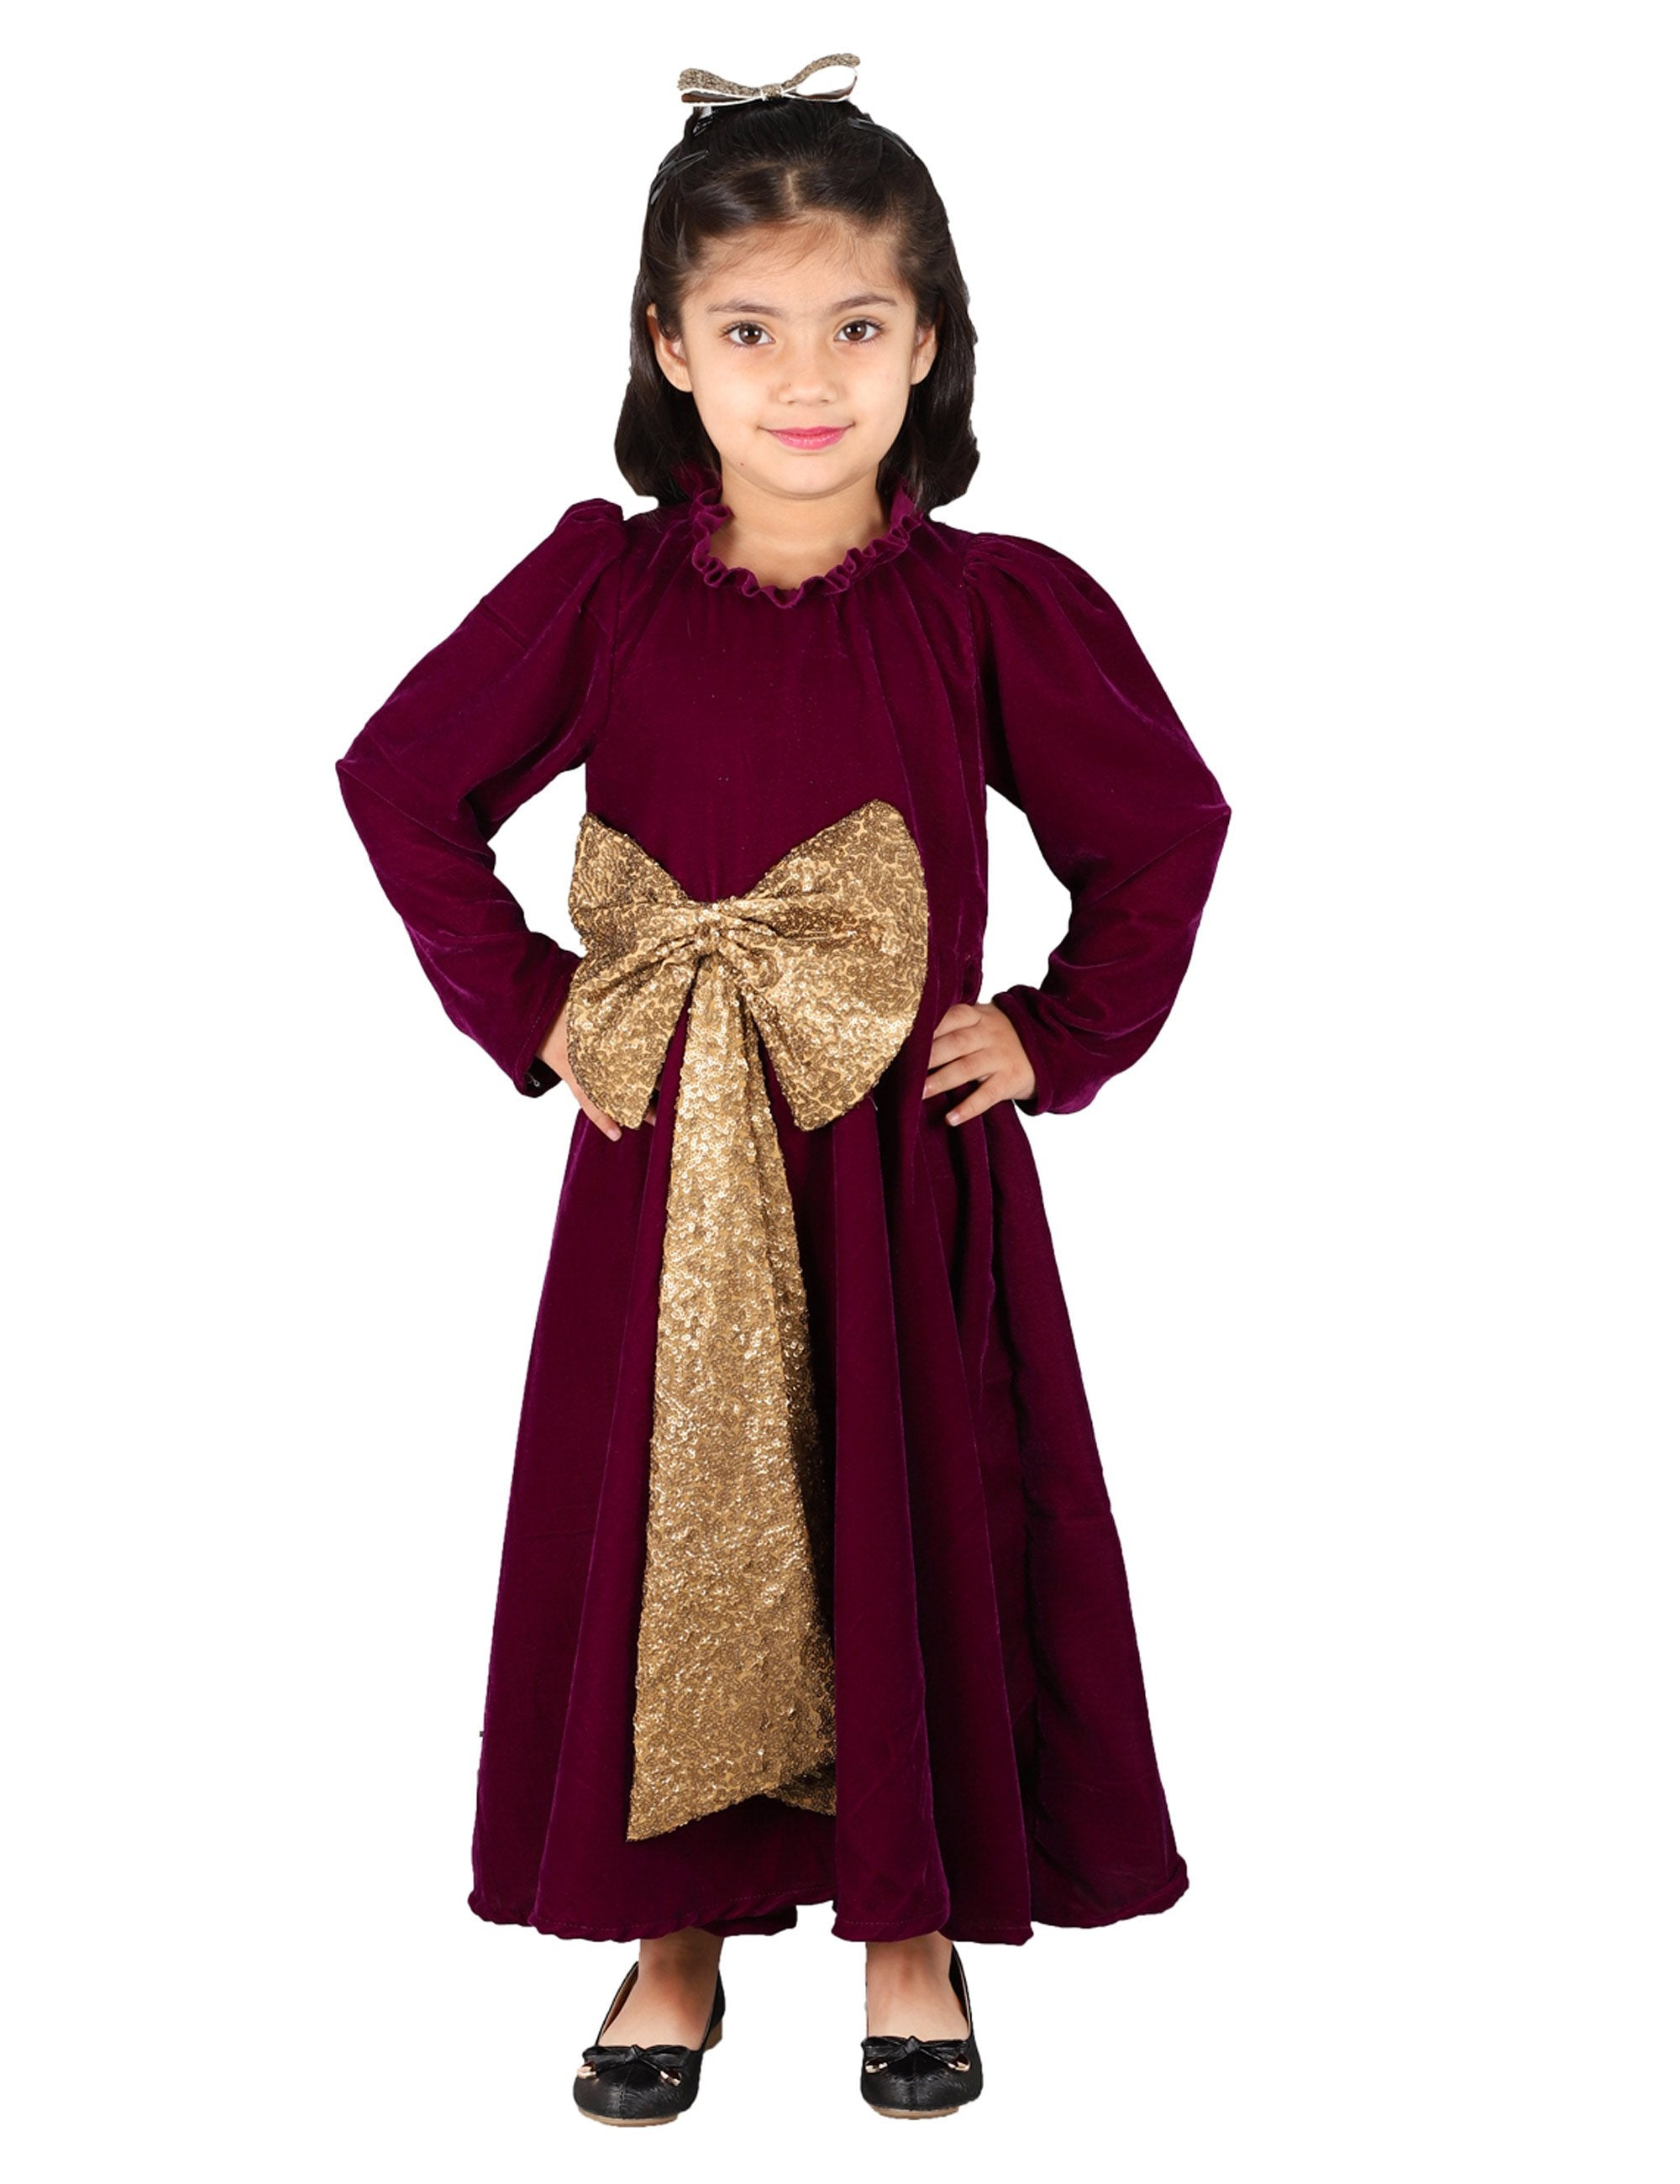 Velvet Gown with Big Bow in Front